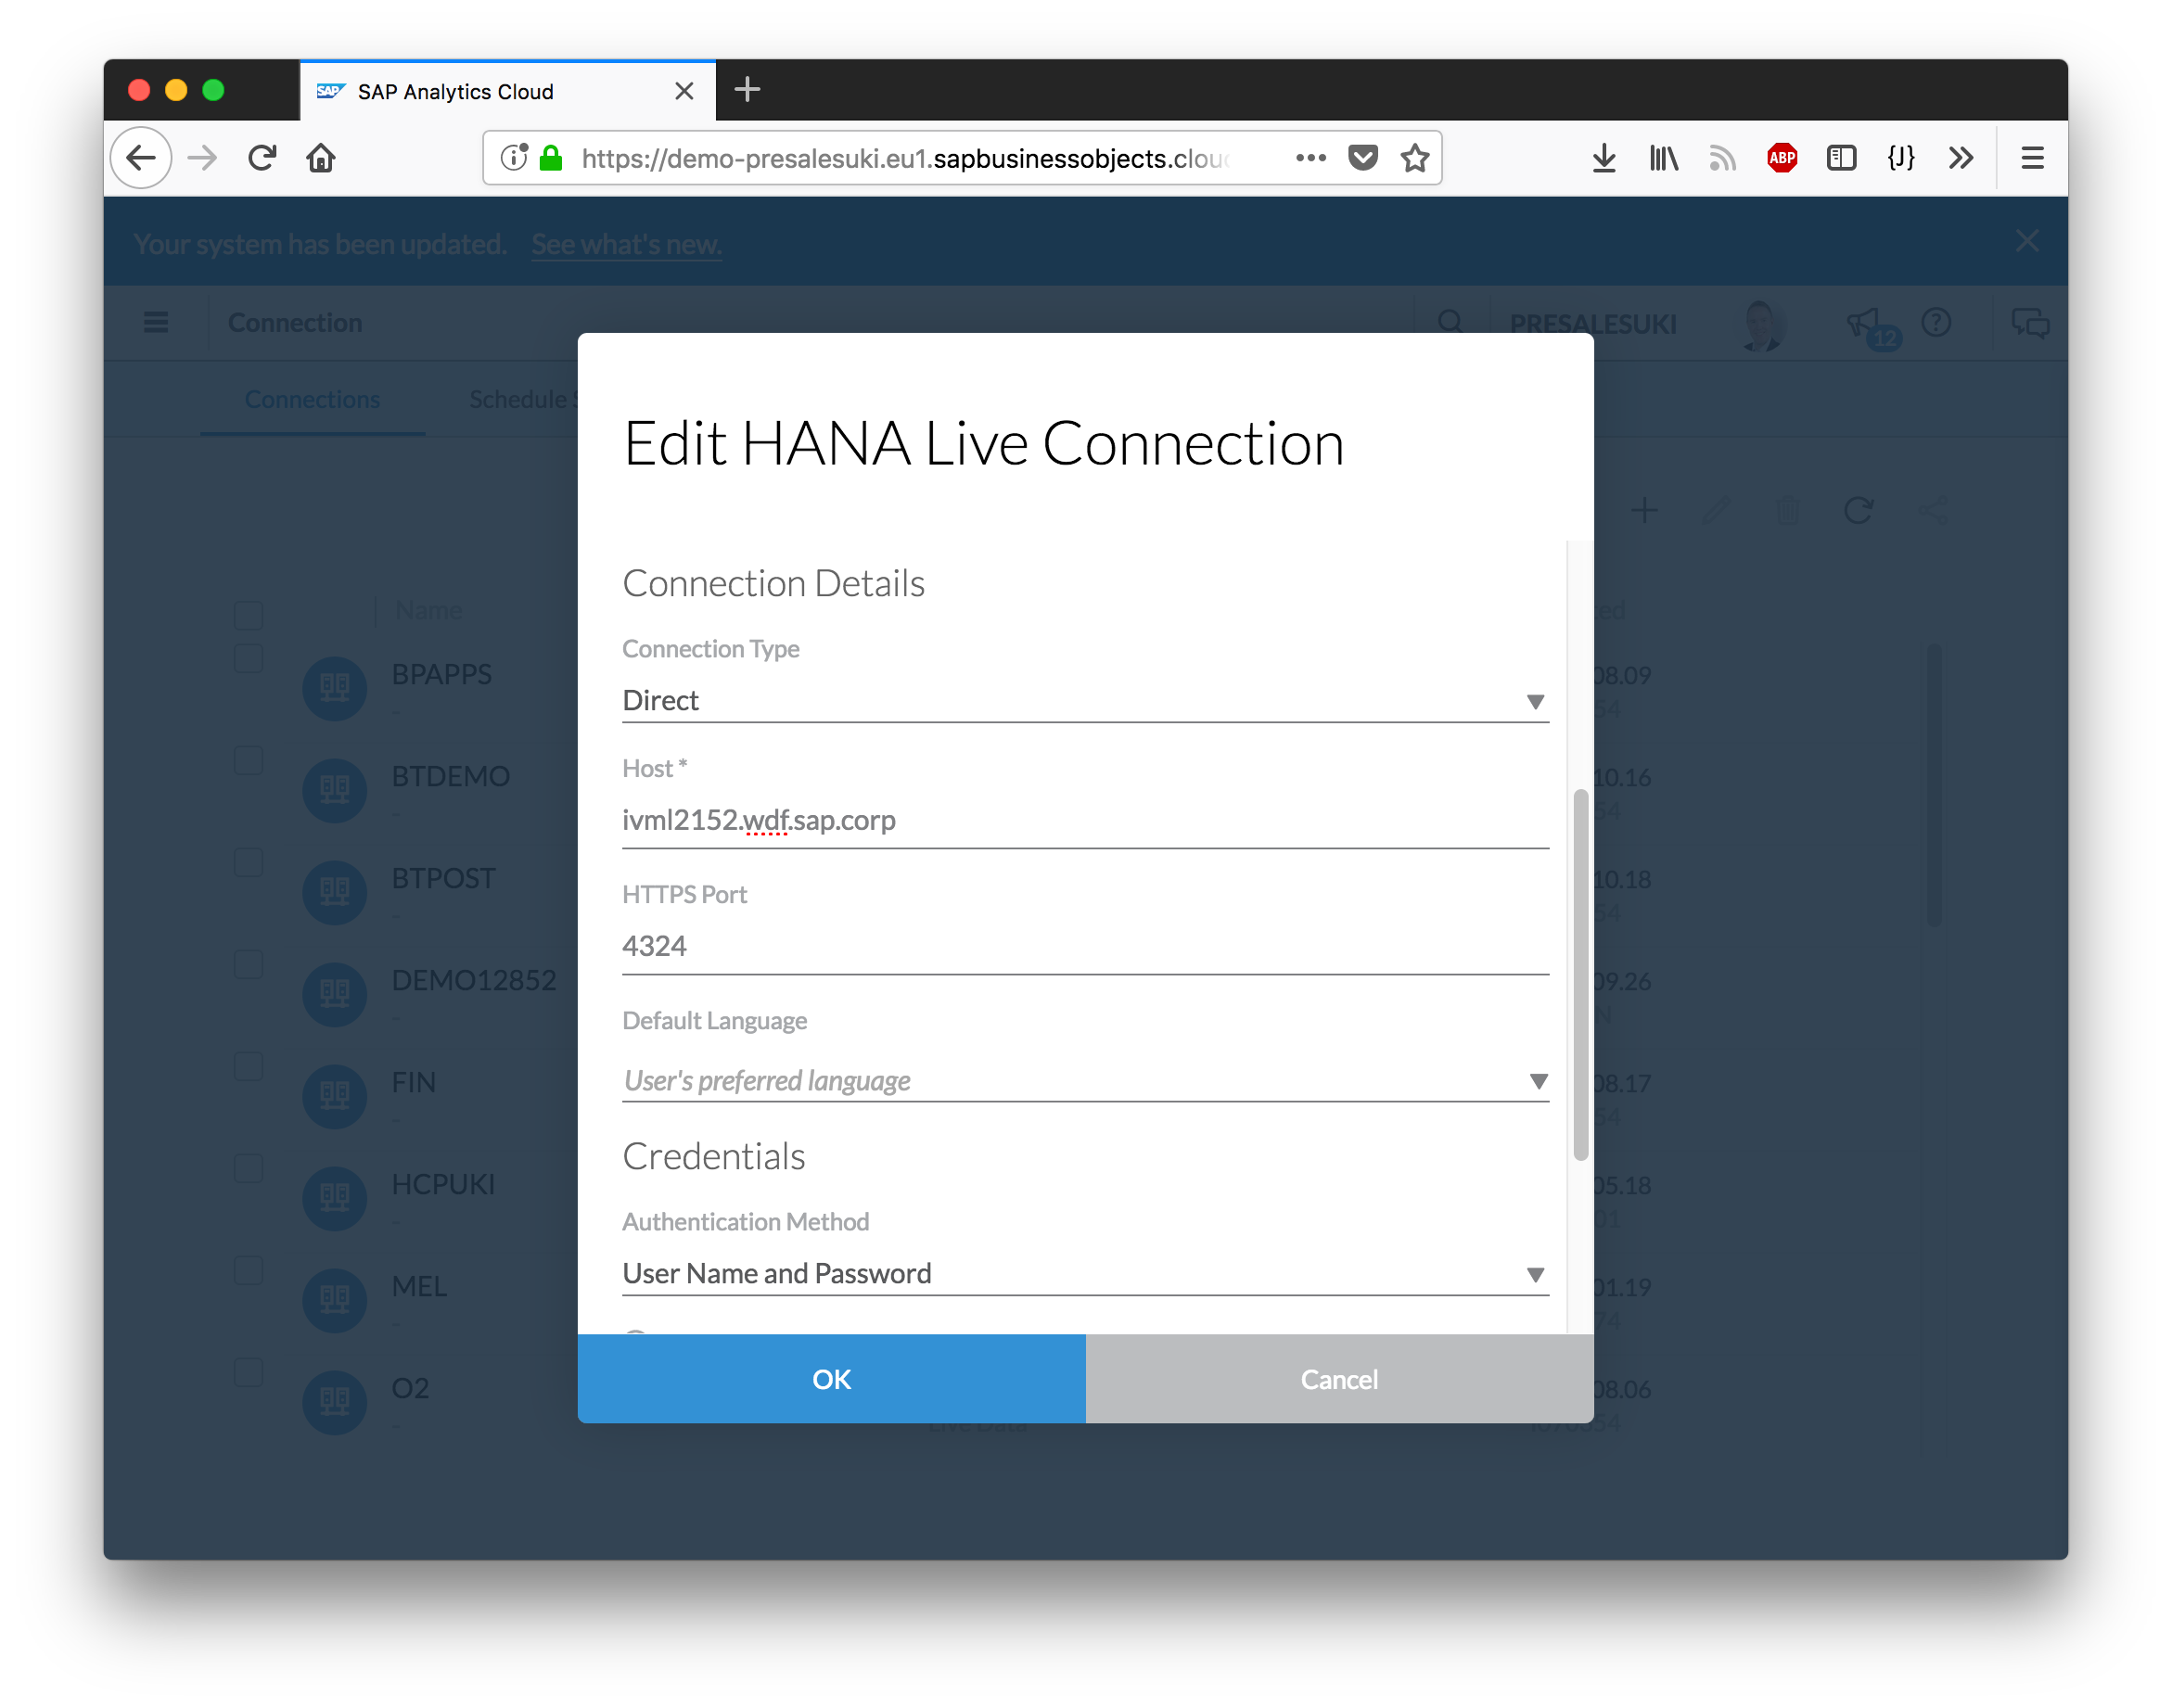 SAP Analytics Cloud Live Data Connection to HANA on-premise using